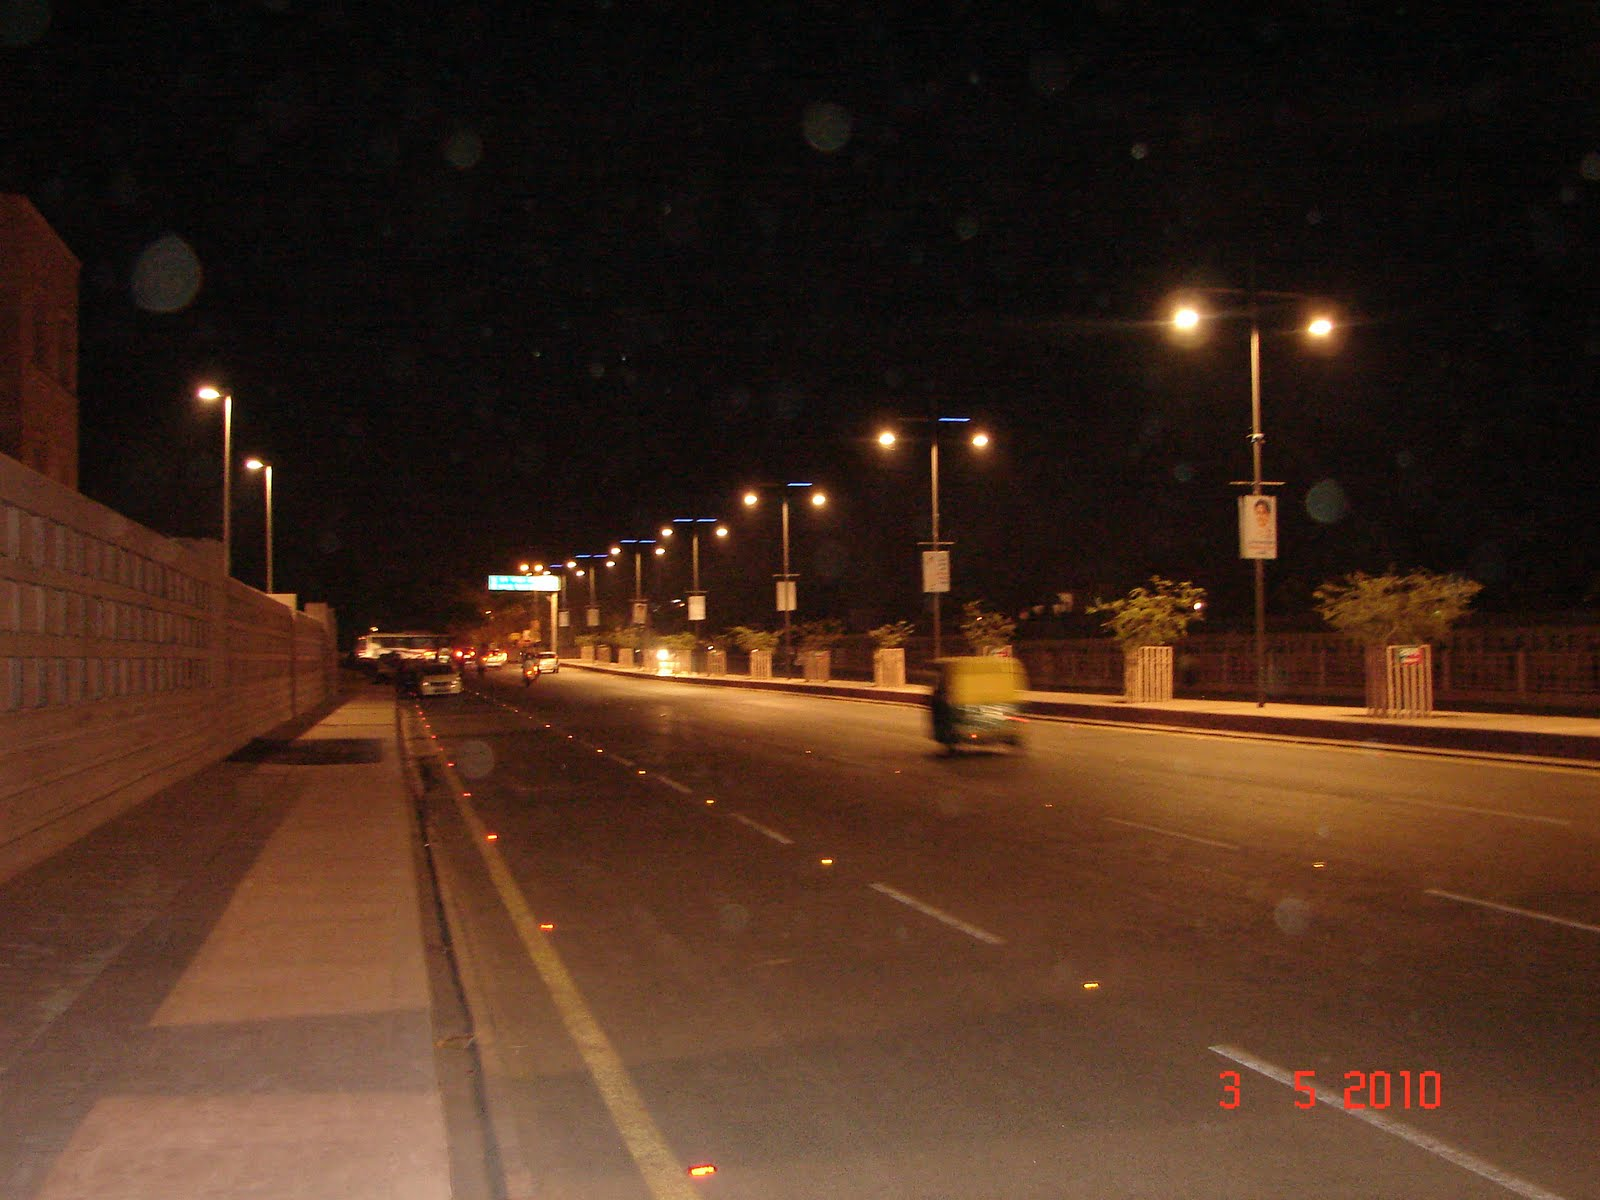 New Lucknow: Night Images of Lucknow